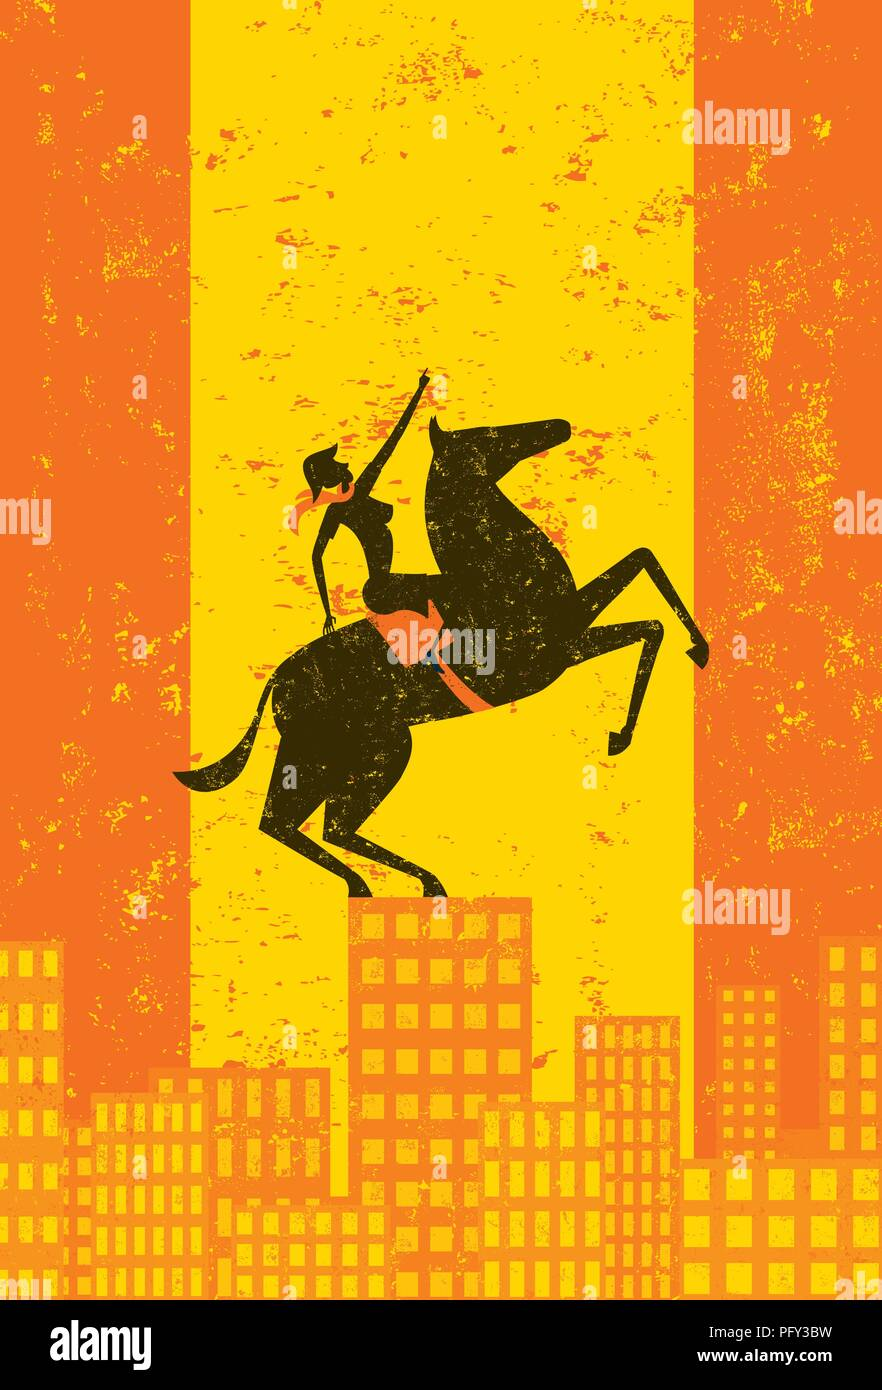 Business Titan. A business leader, looking Napoleon-esque on her horse, points upward on top of a city skyline. - Stock Vector